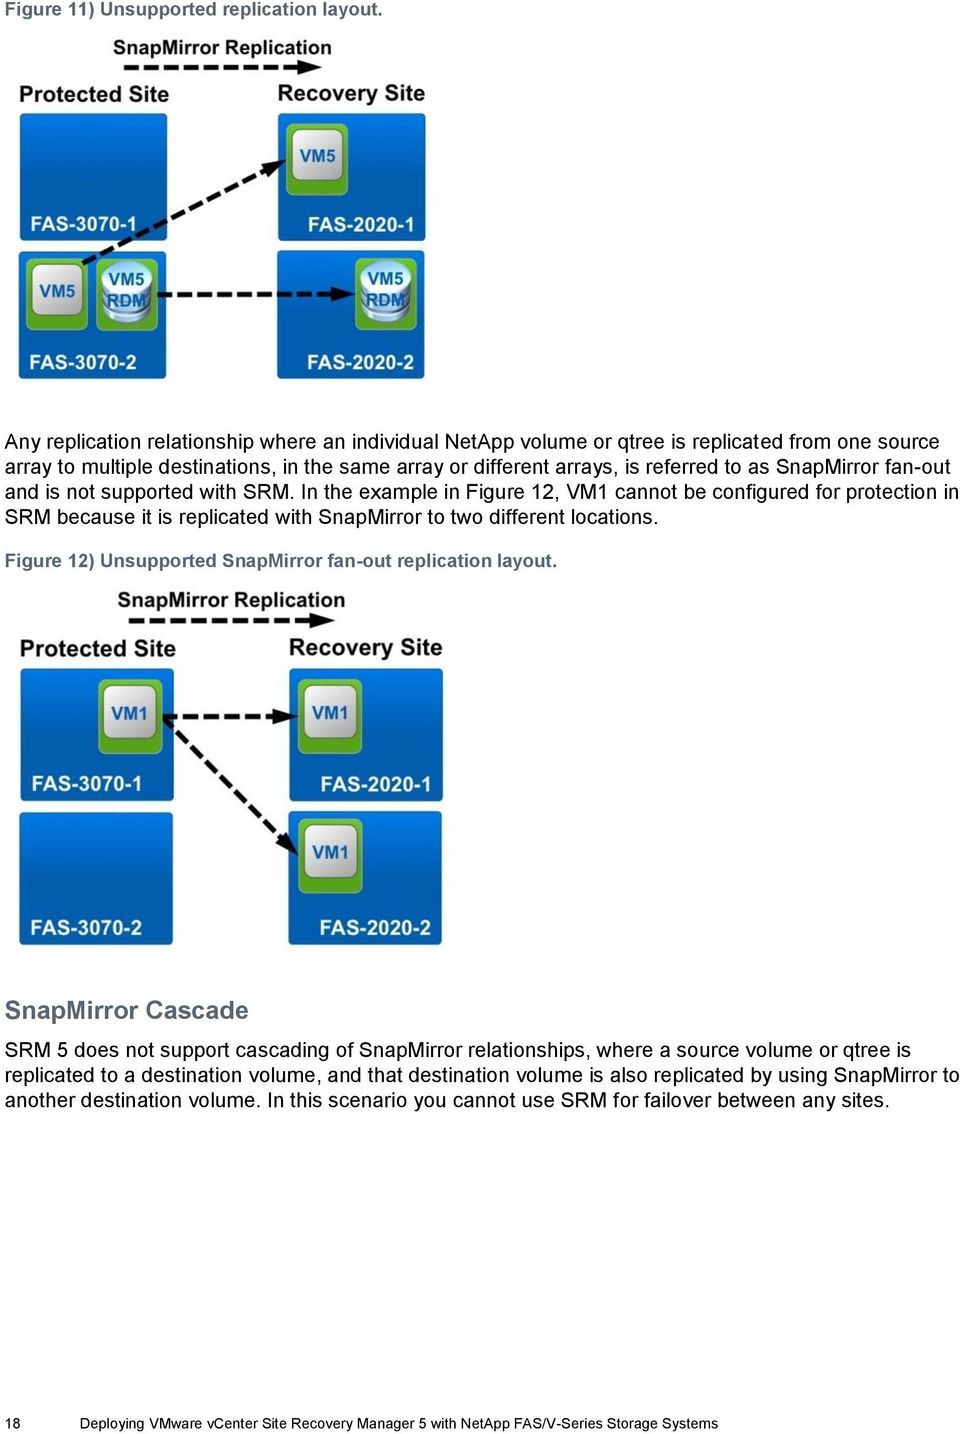 SnapMirror fan-out and is not supported with SRM. In the example in Figure 12, VM1 cannot be configured for protection in SRM because it is replicated with SnapMirror to two different locations.